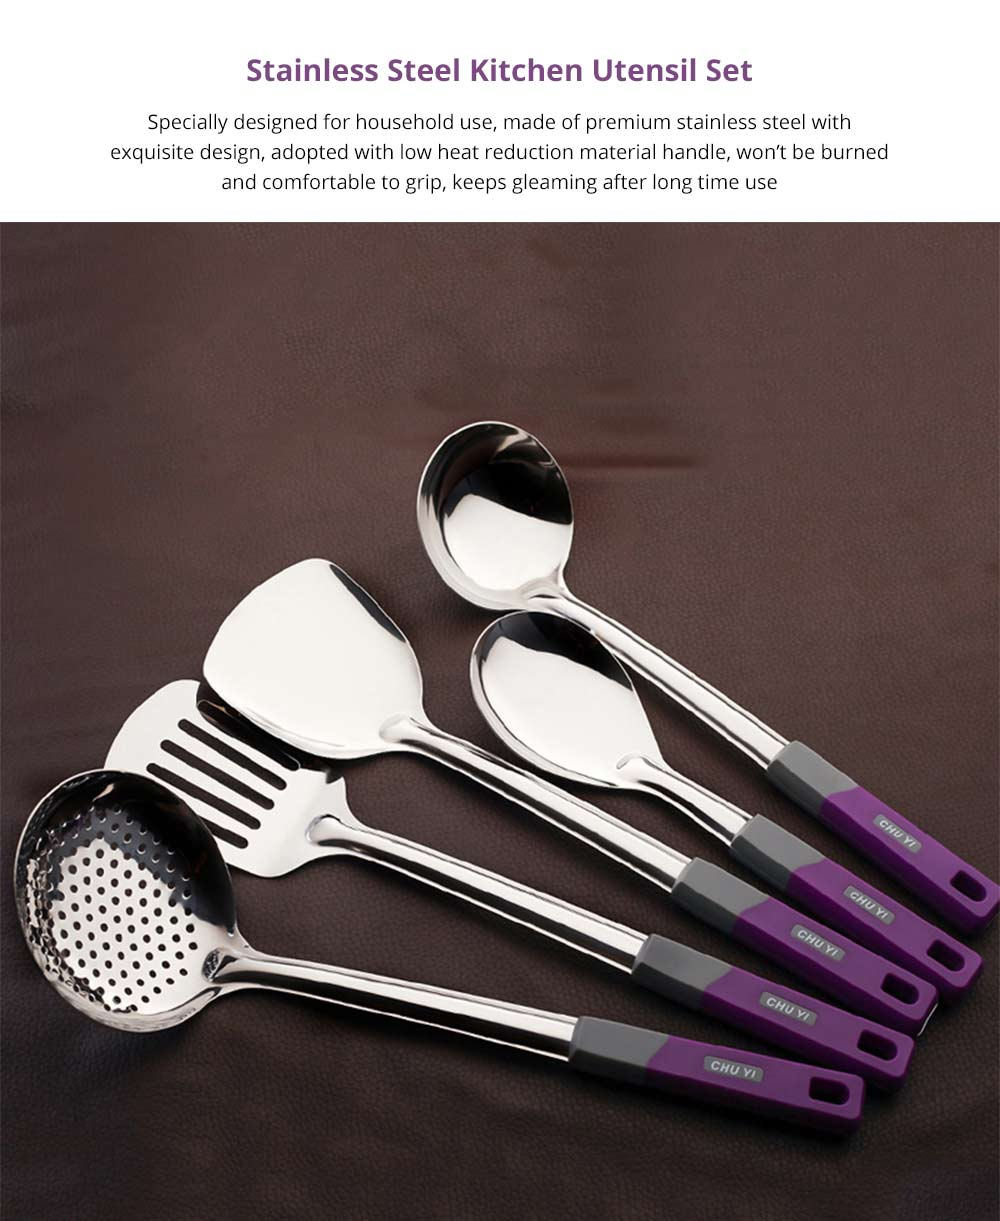 Stainless Steel Kitchen Utensil Set Cooking Spoon Set